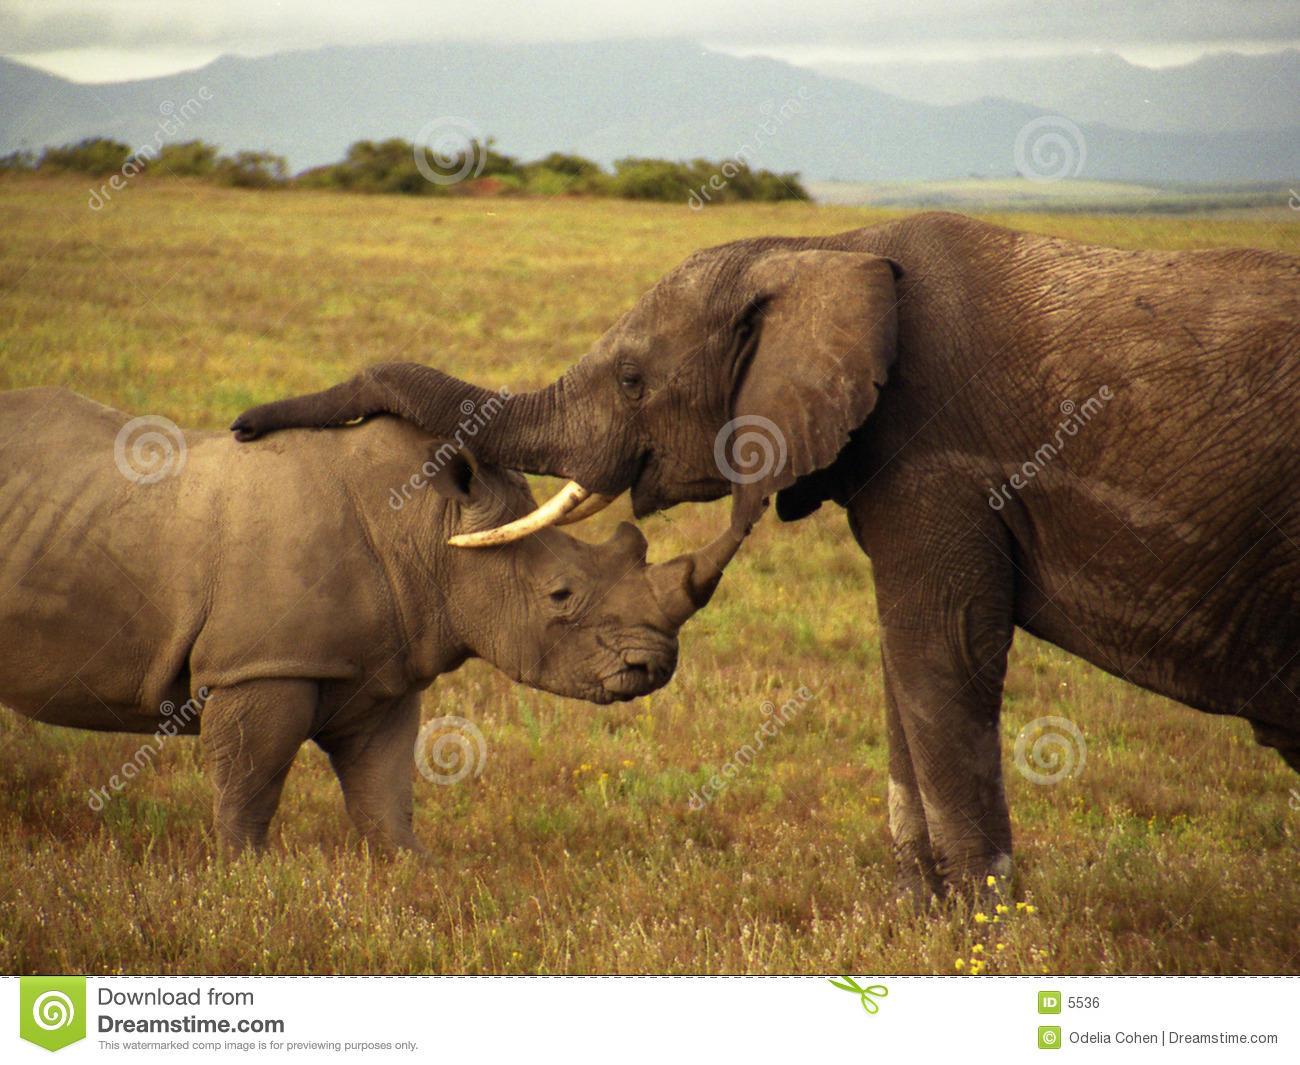 An Elephant And A Rhino Royalty Free Stock Image - Image: 5536